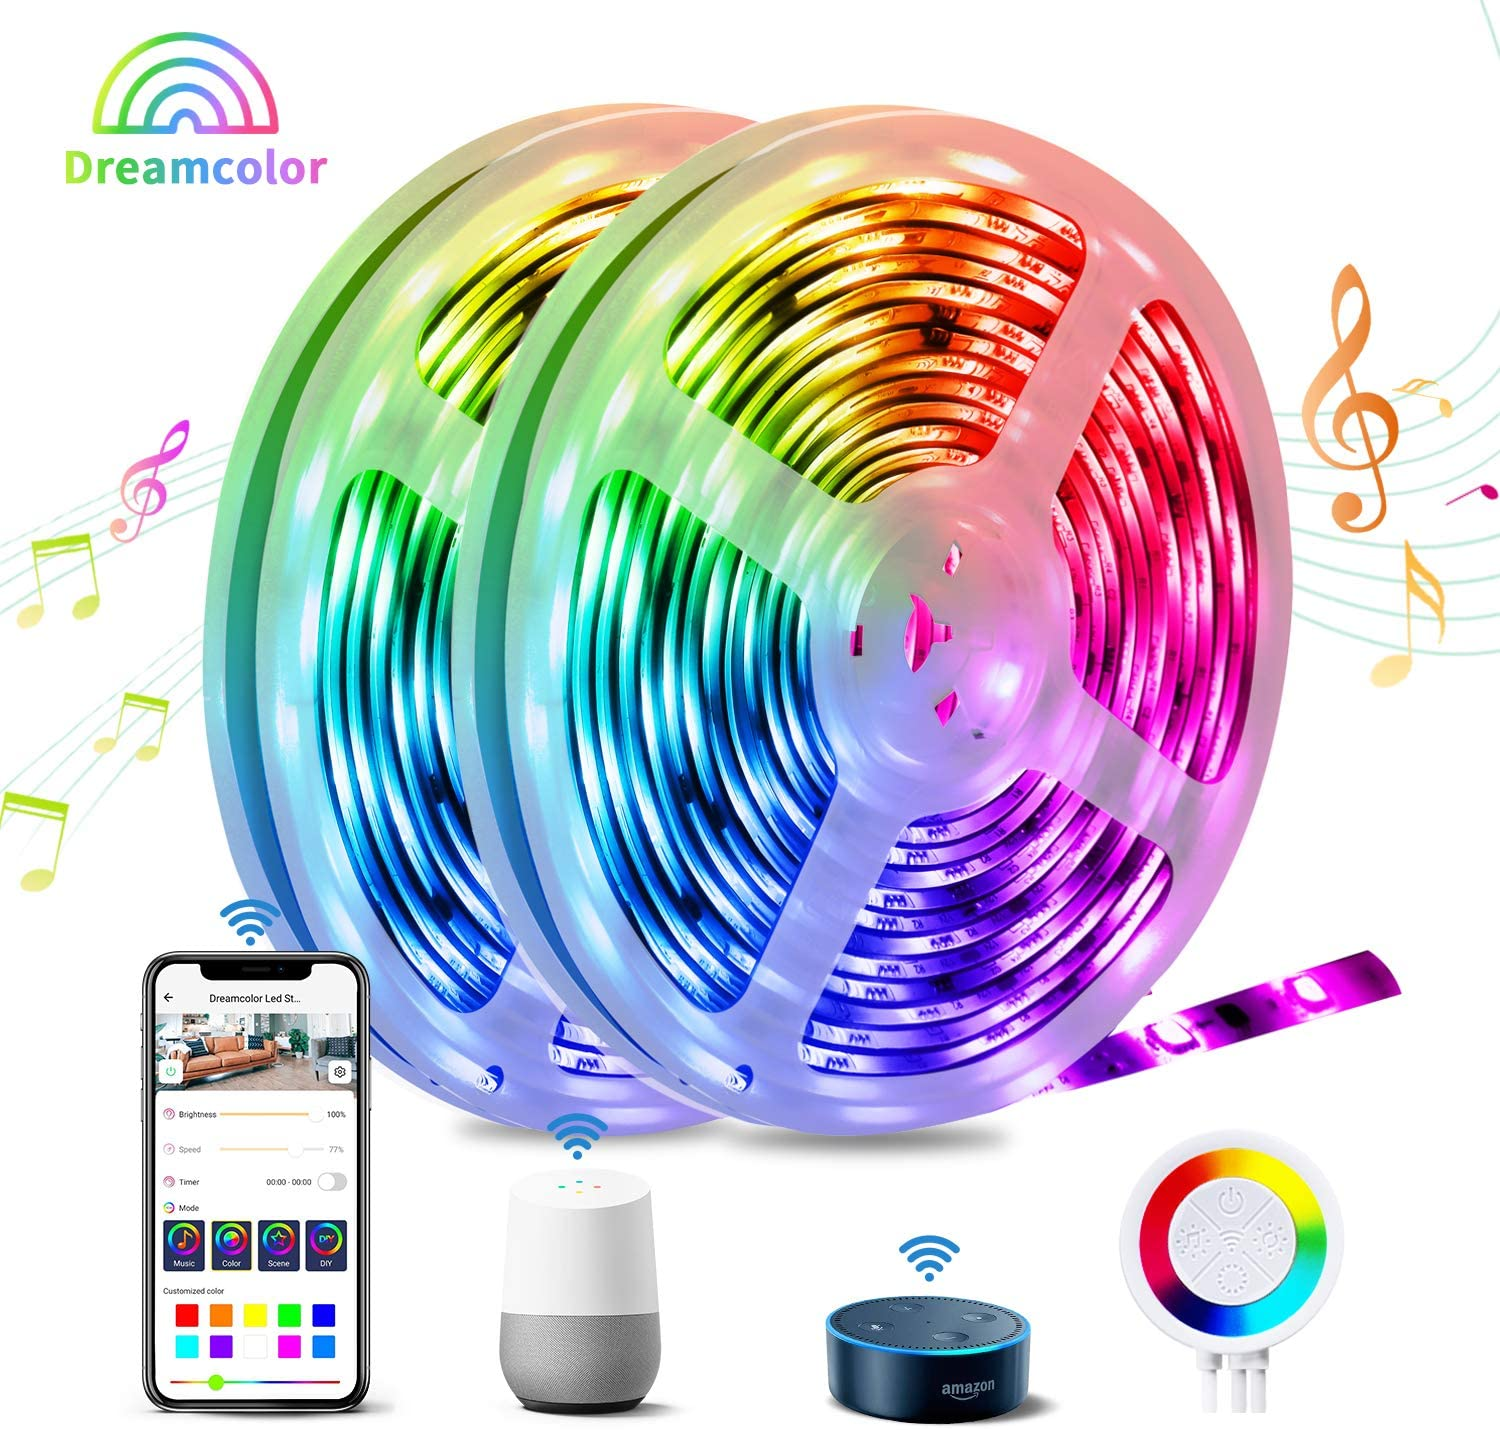 Dreamcolor Smart LED Strip Lights, TASMOR 32.8ft RGBIC WiFi LED Light Strip Music Sync Chasing Effect Light Strip Works with Alexa Google Home IP65 Waterproof App Control for Bedroom, Kitchen, Party